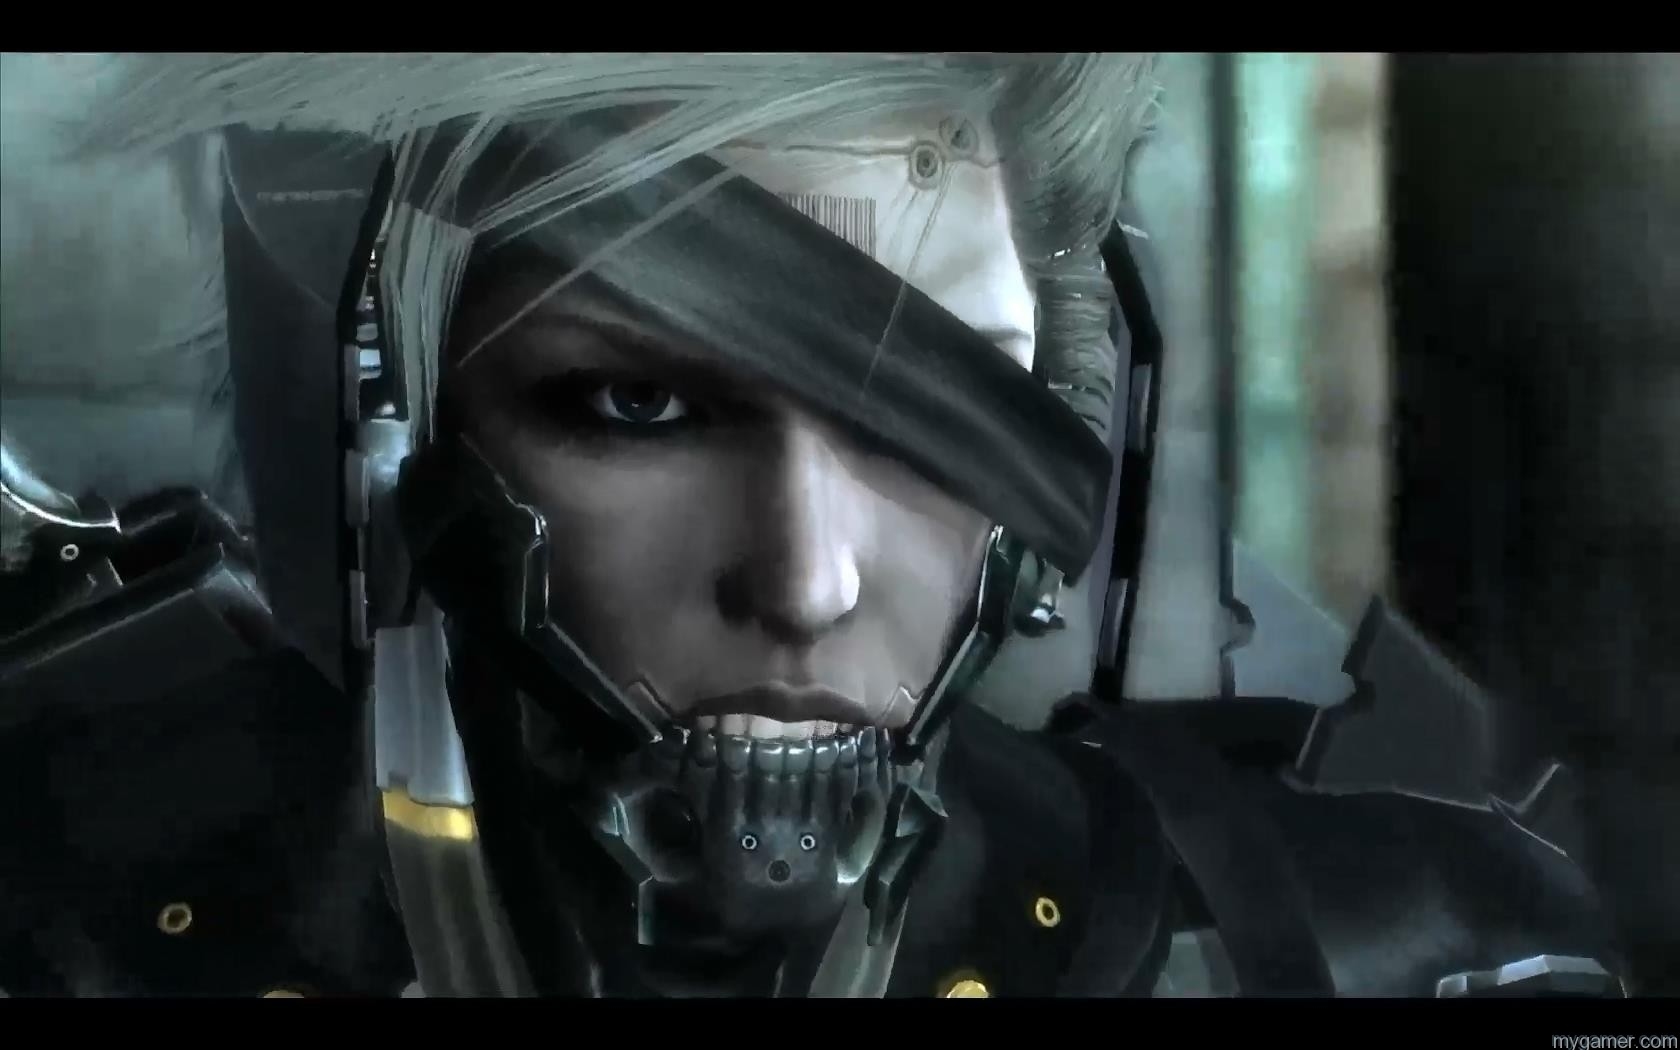 Mygamer Streaming Cast Awesome Blast! Metal Gear Rising Mygamer Streaming Cast Awesome Blast! Metal Gear Rising metalgear